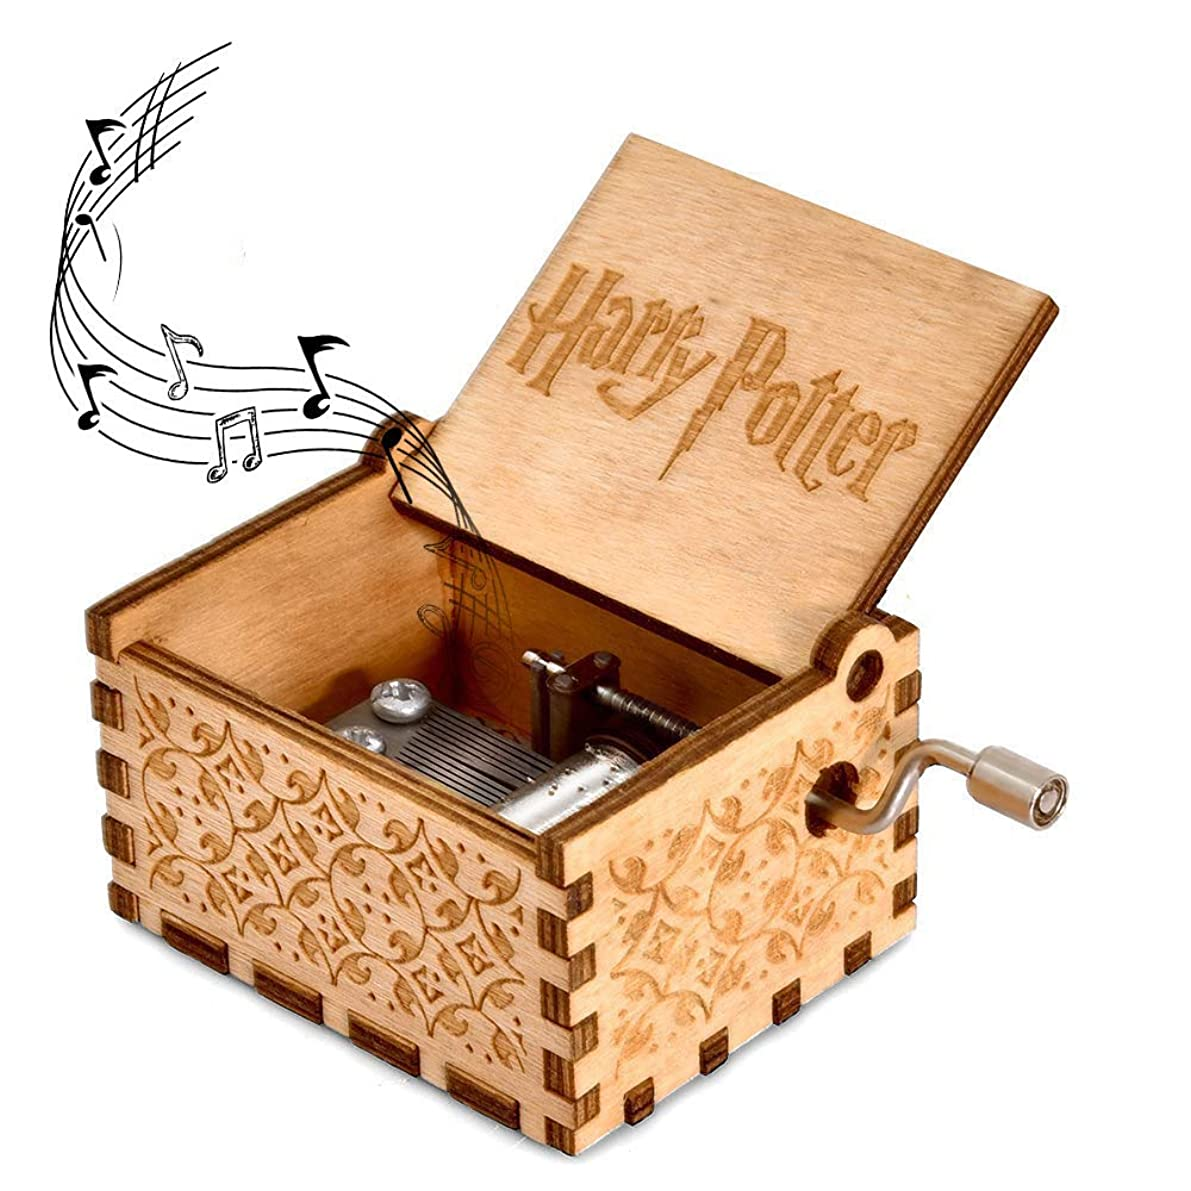 Yoomarket Music Box for Harry Potter Hedwig's Theme Carved Wooden Hand Crank Musical Box Vintage Classic Handmade Engraved Children's Day Birthday Gift for Kids, Boys, Girls, Friends